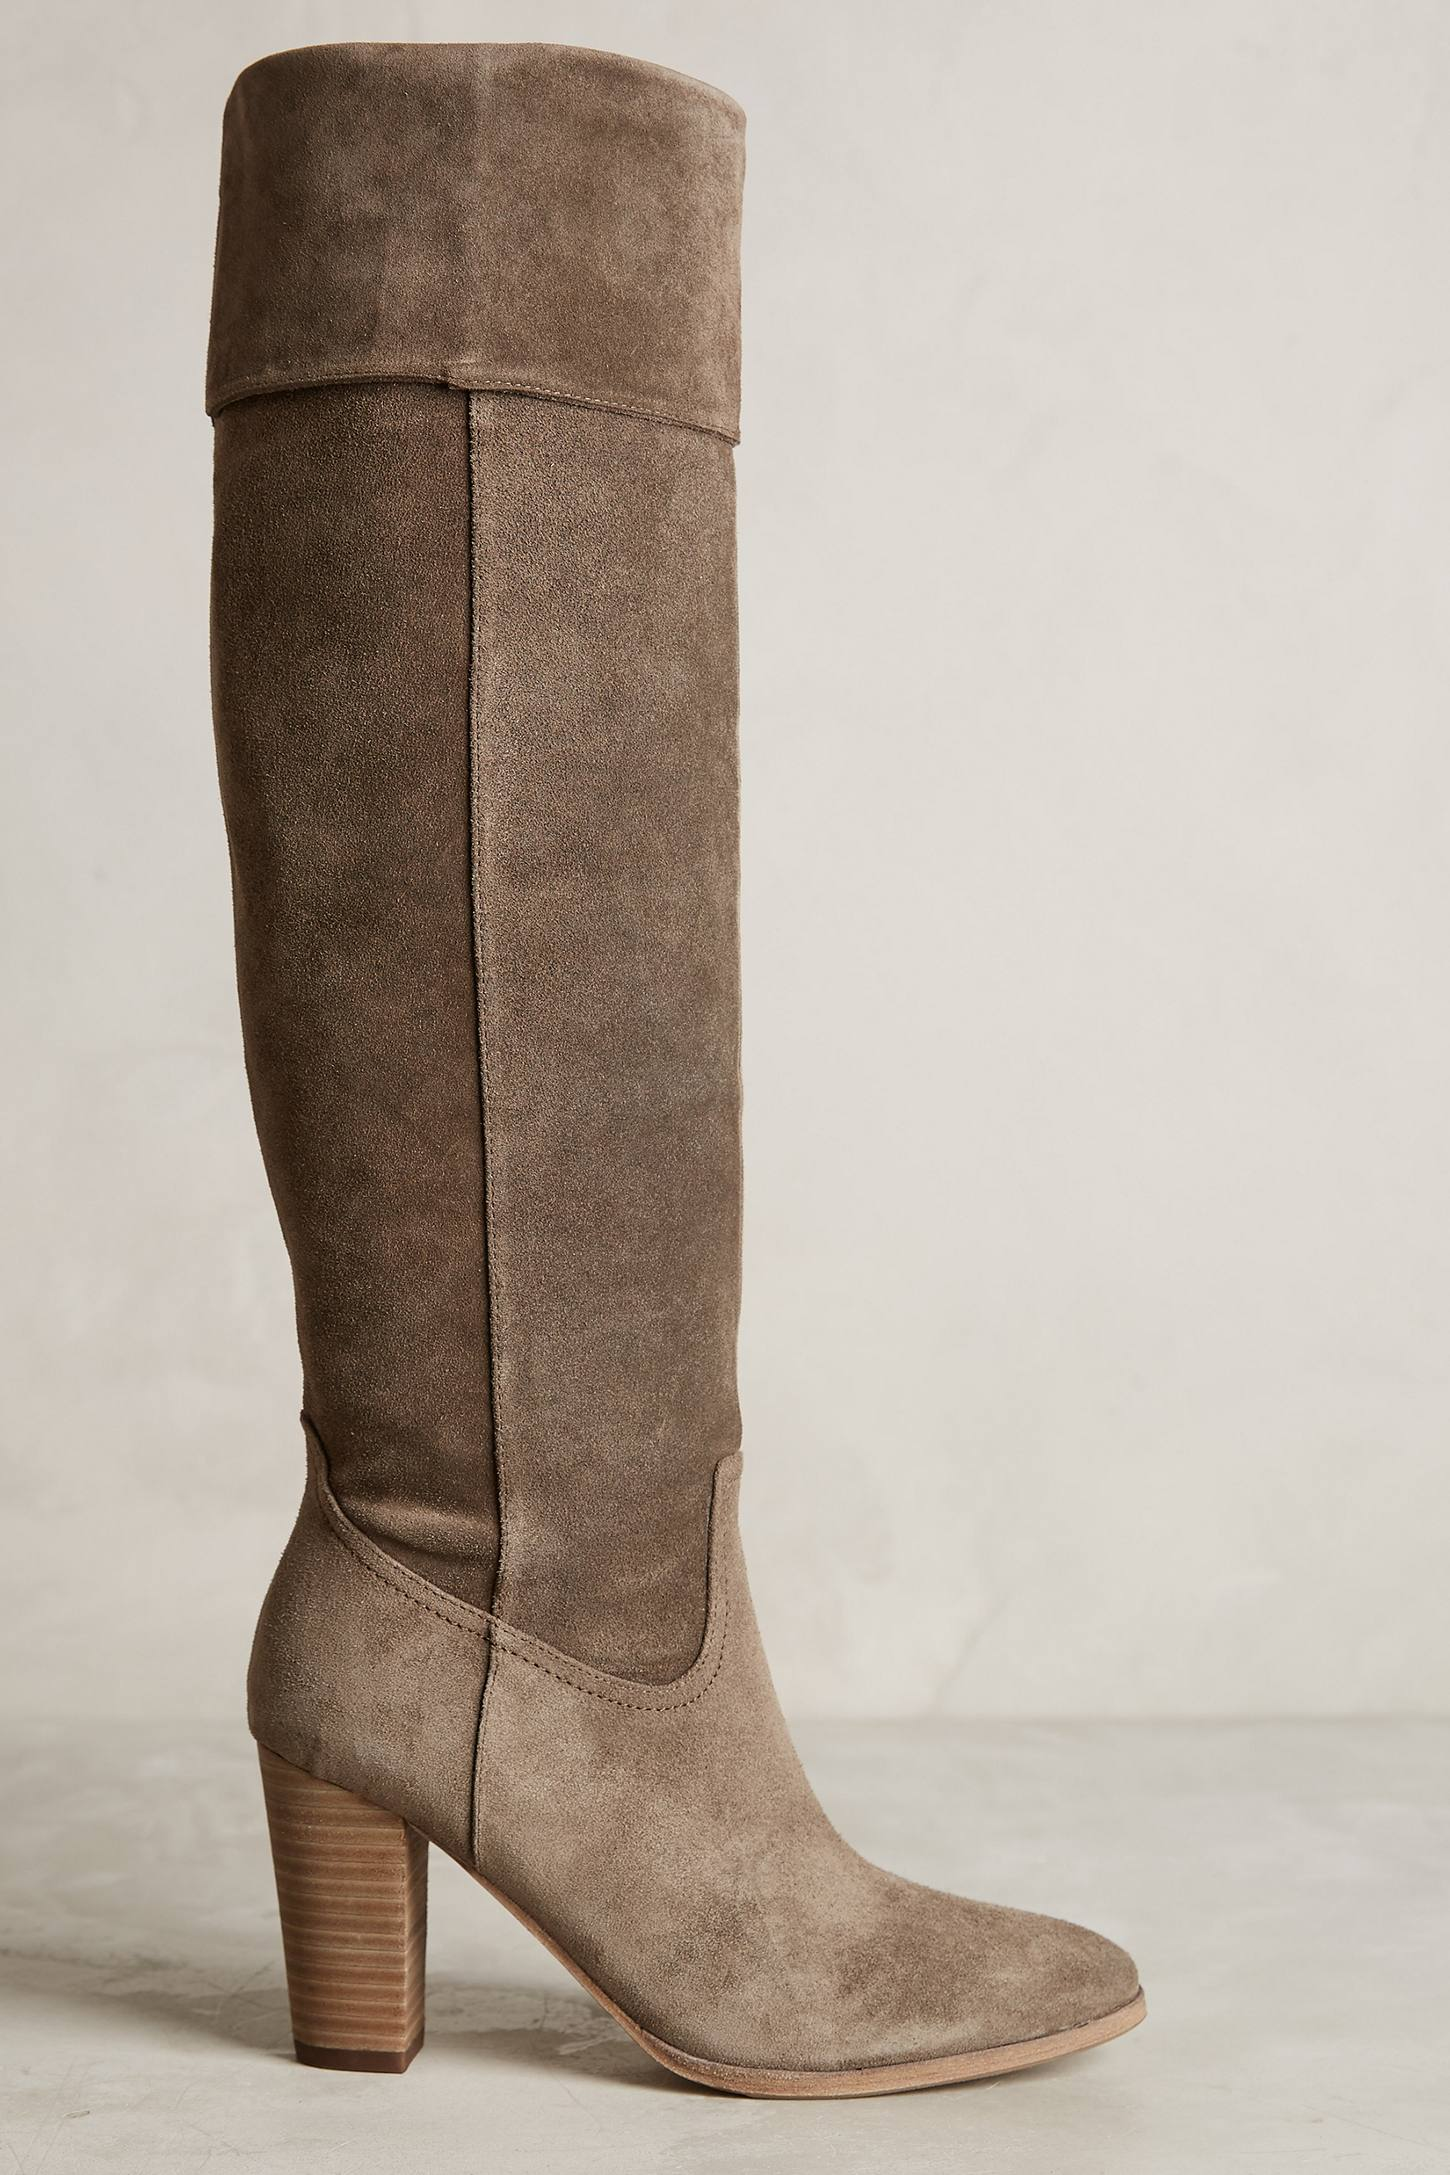 Belle by Sigerson Morrison Honey Boots